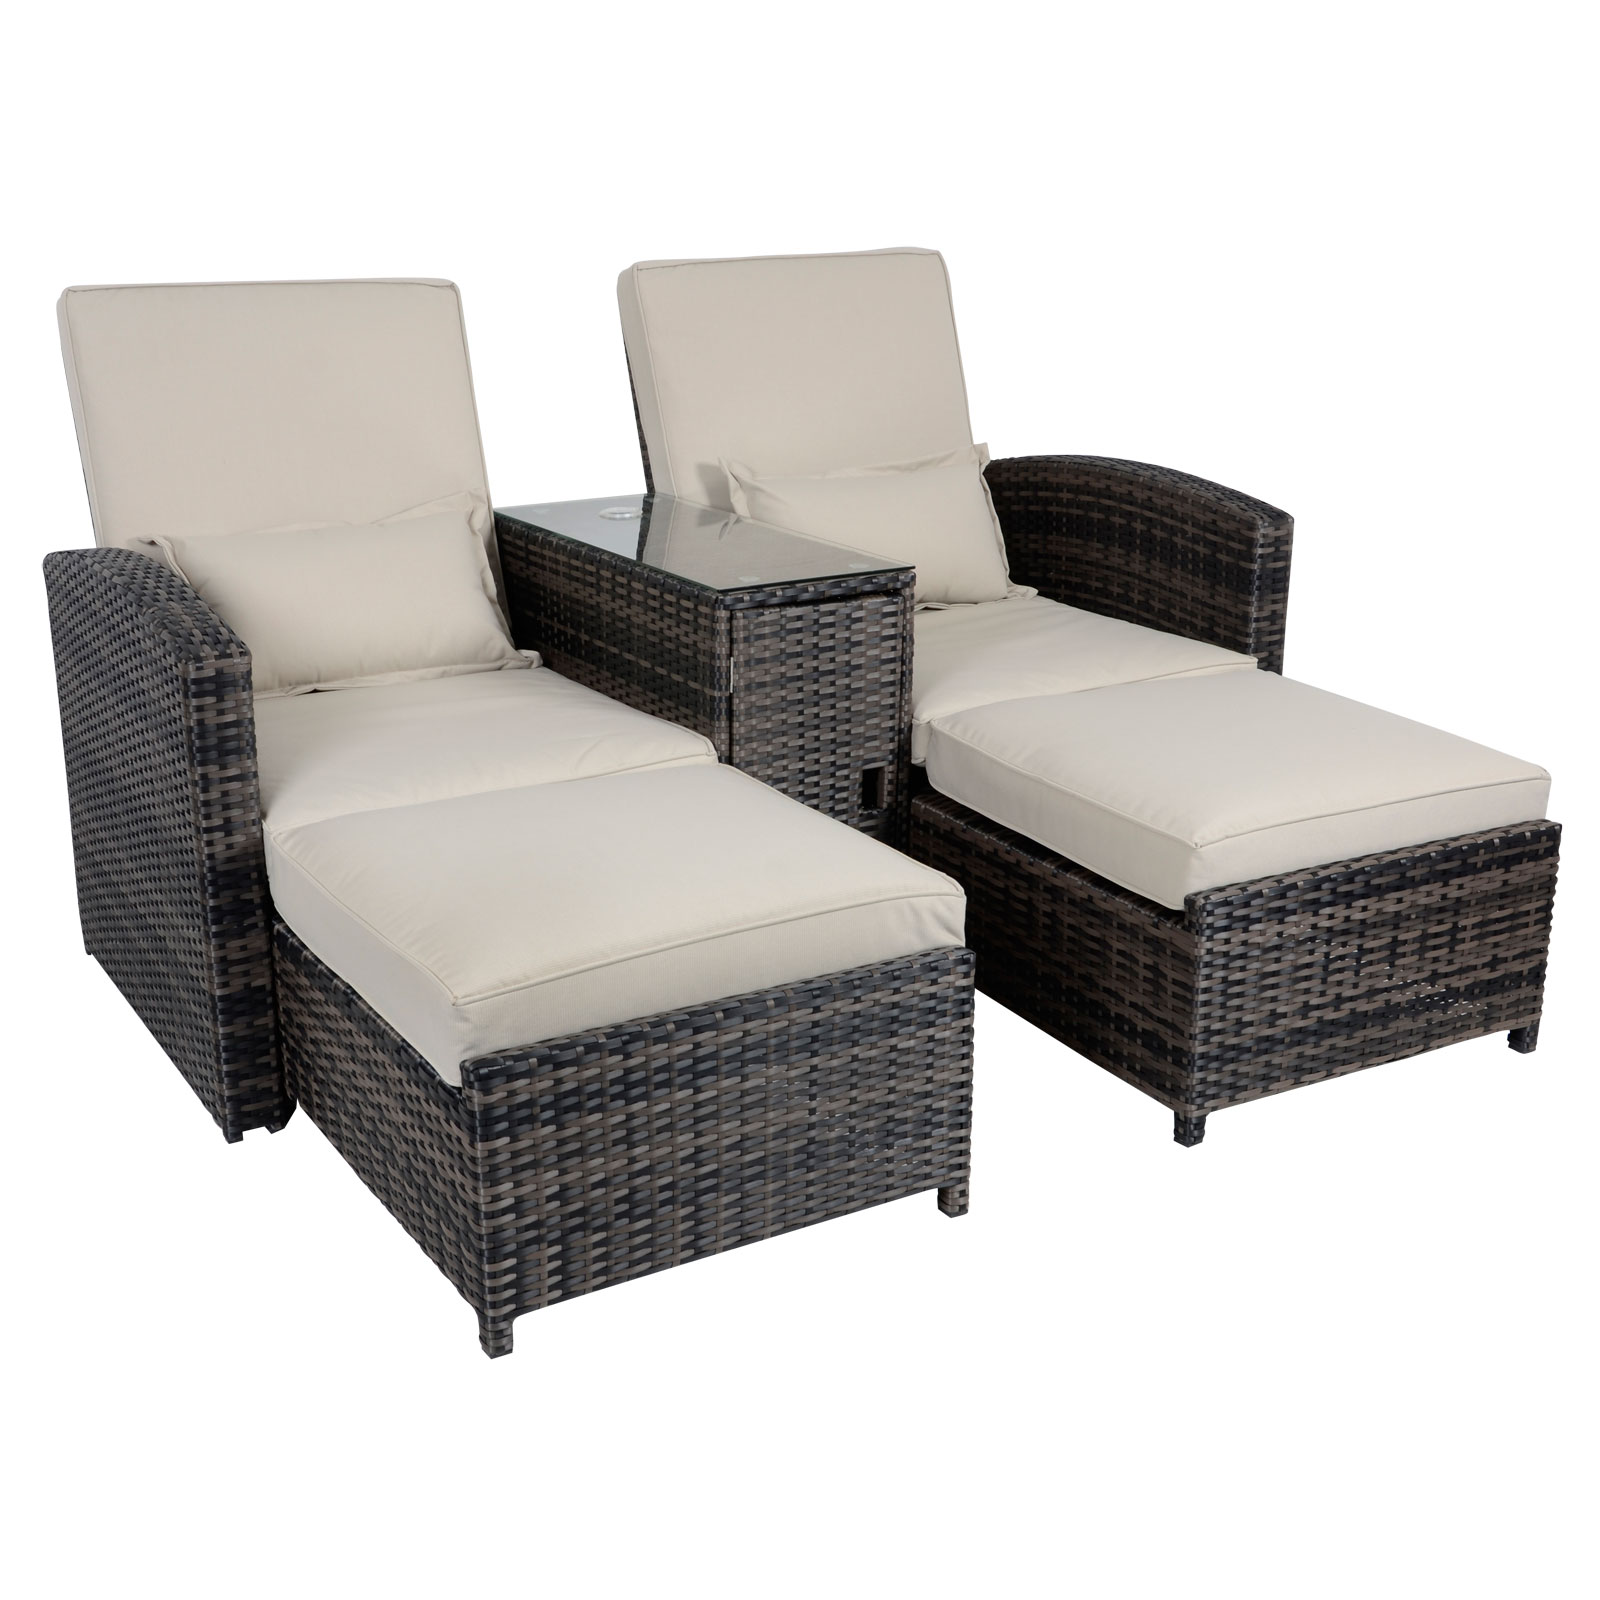 antigua rattan sun lounger companion relaxer chair outdoor. Black Bedroom Furniture Sets. Home Design Ideas